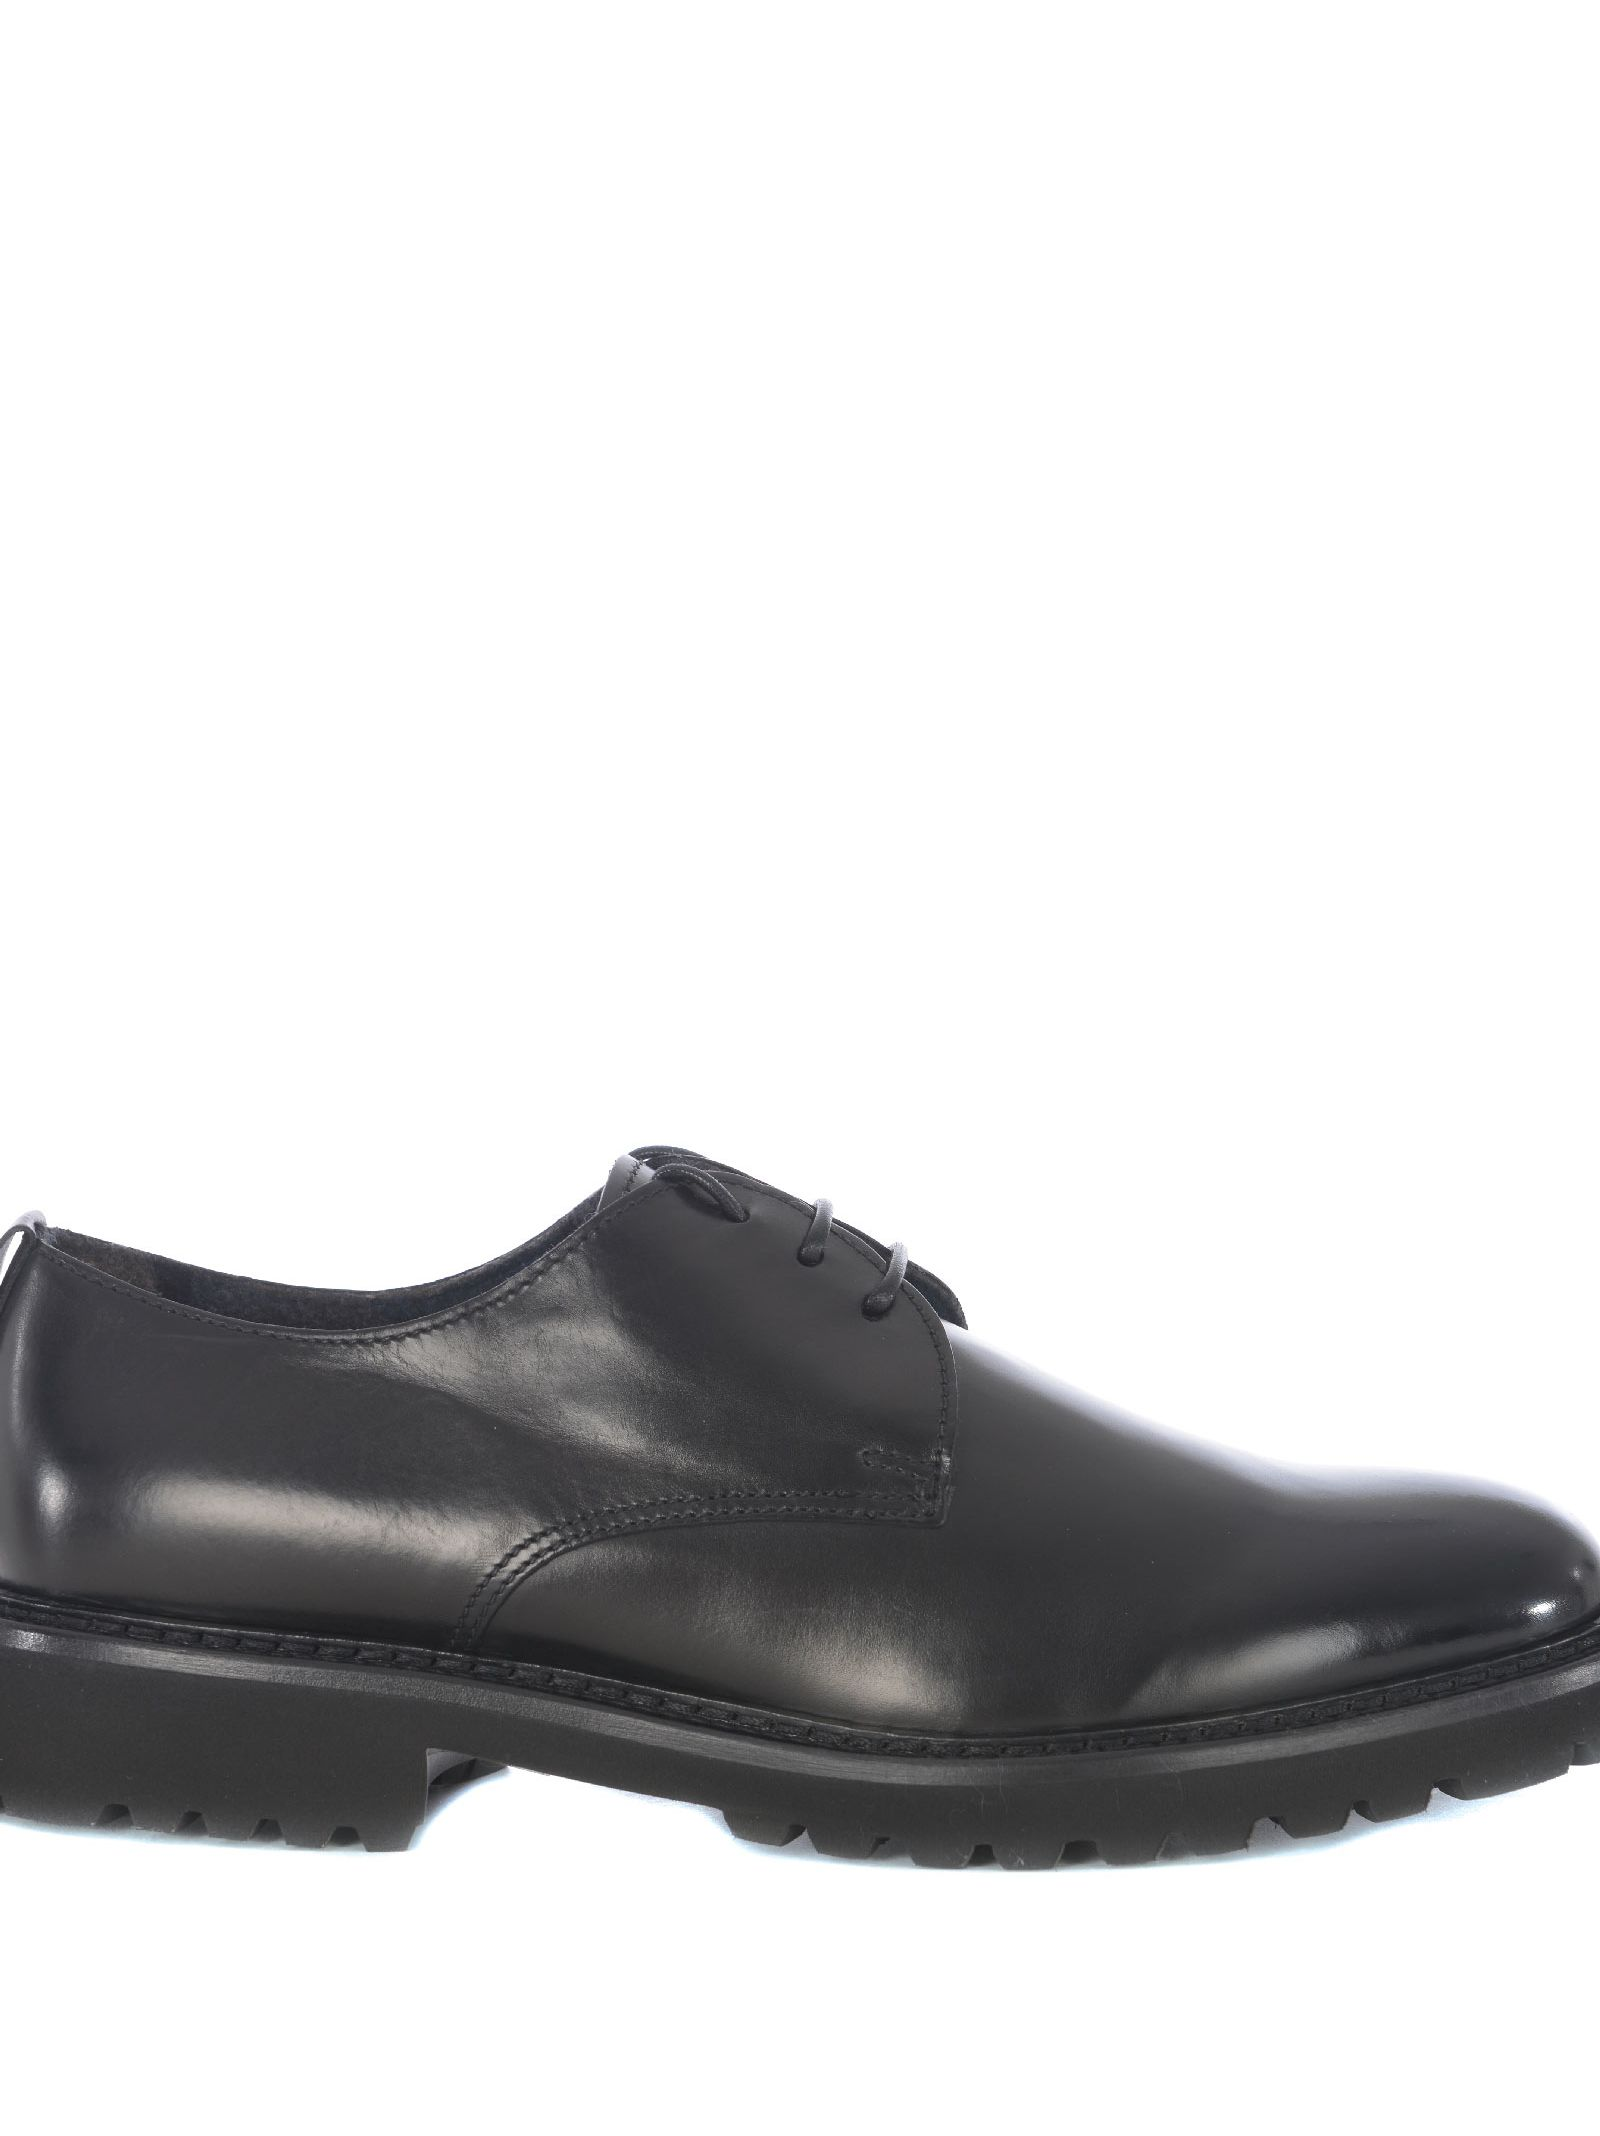 Doucal's Classic Derby Shoes